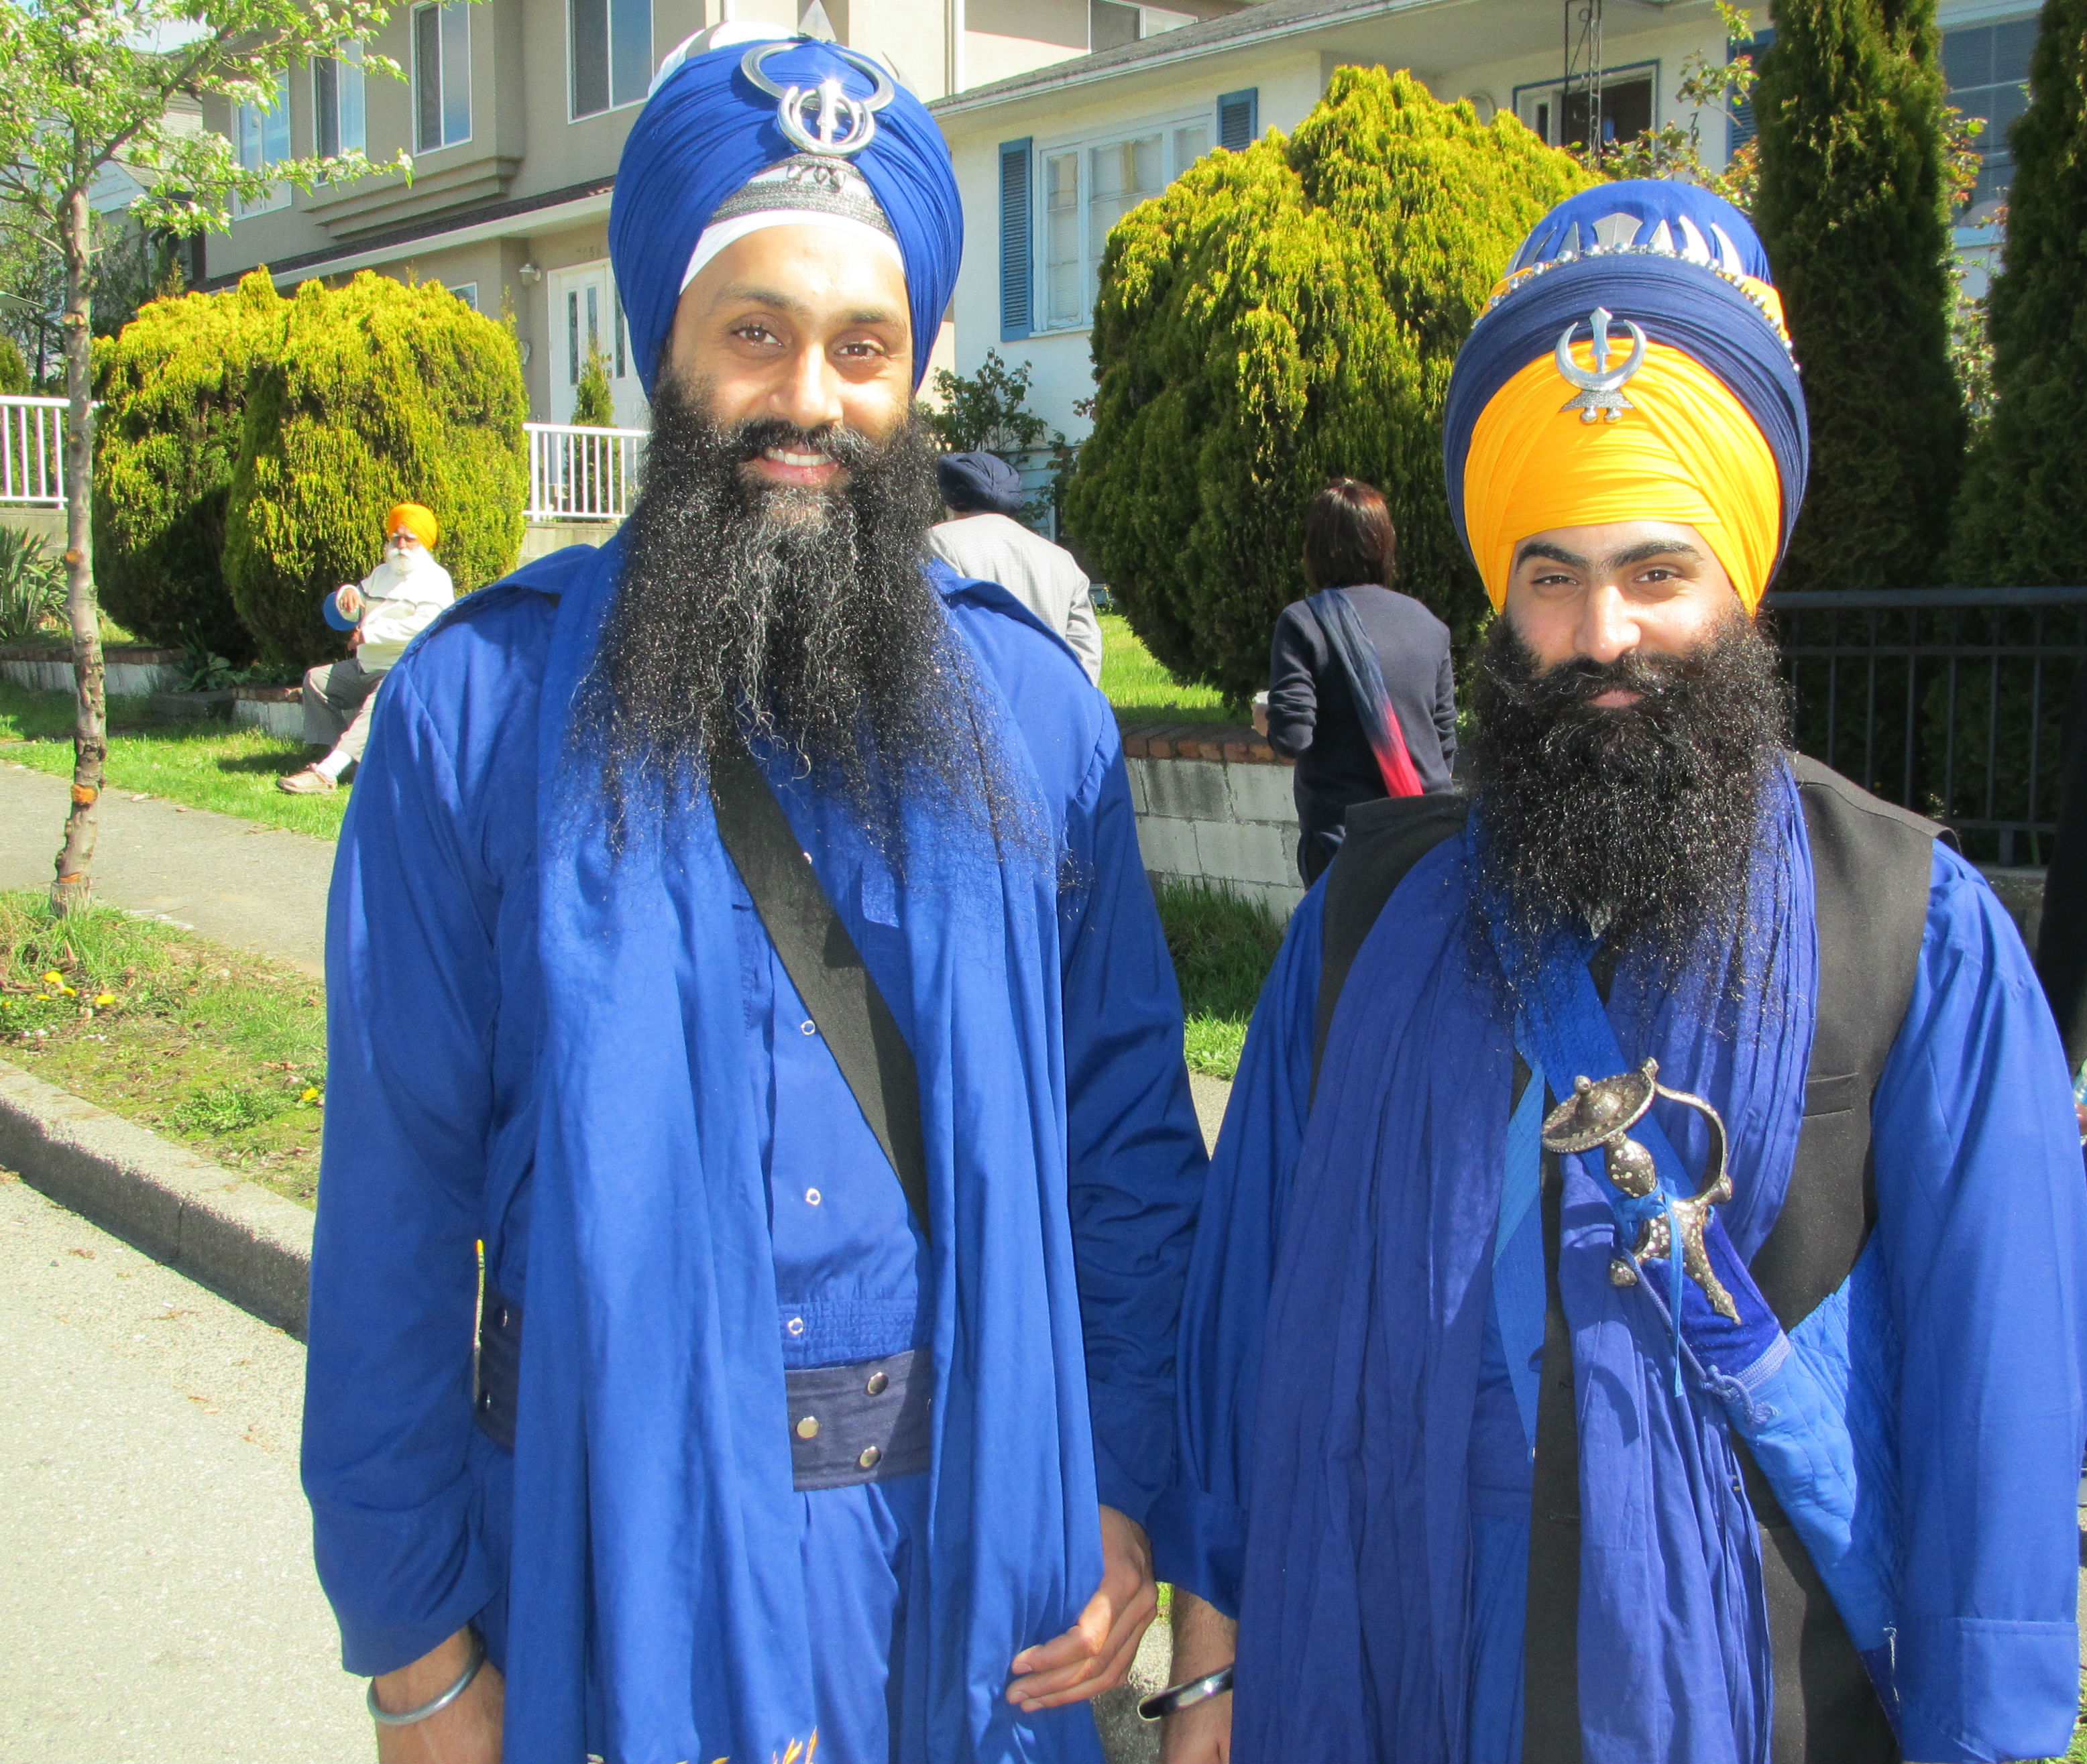 modern sikhs explain why they dress like traditional